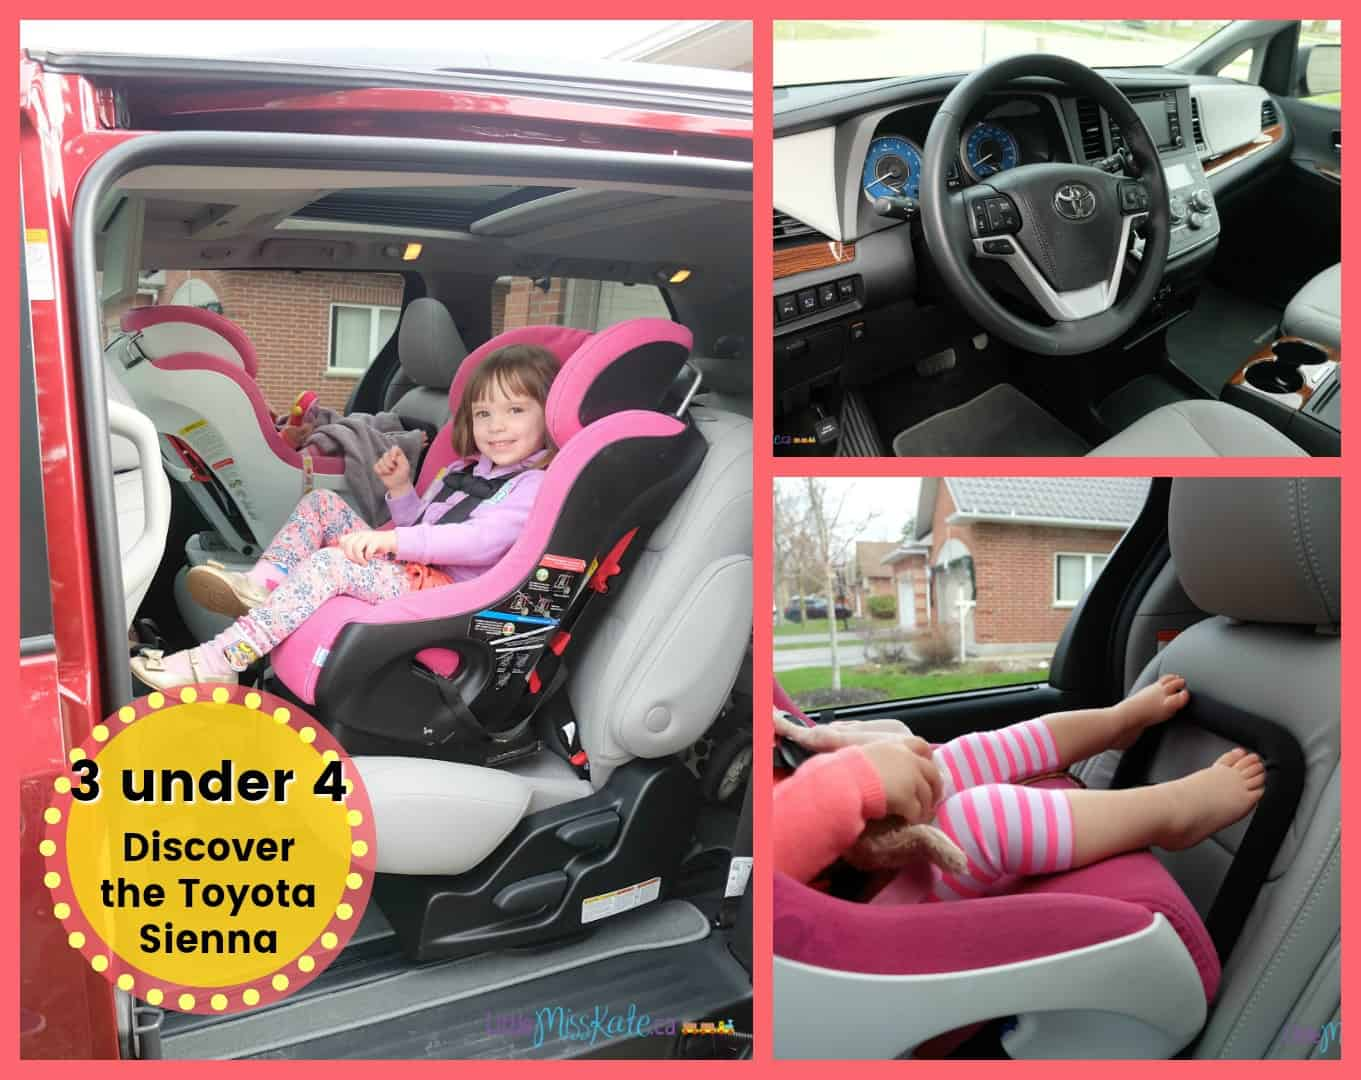 How To Get Around With Three Kids Under Five: Discover the Toyota Sienna 2018 Review